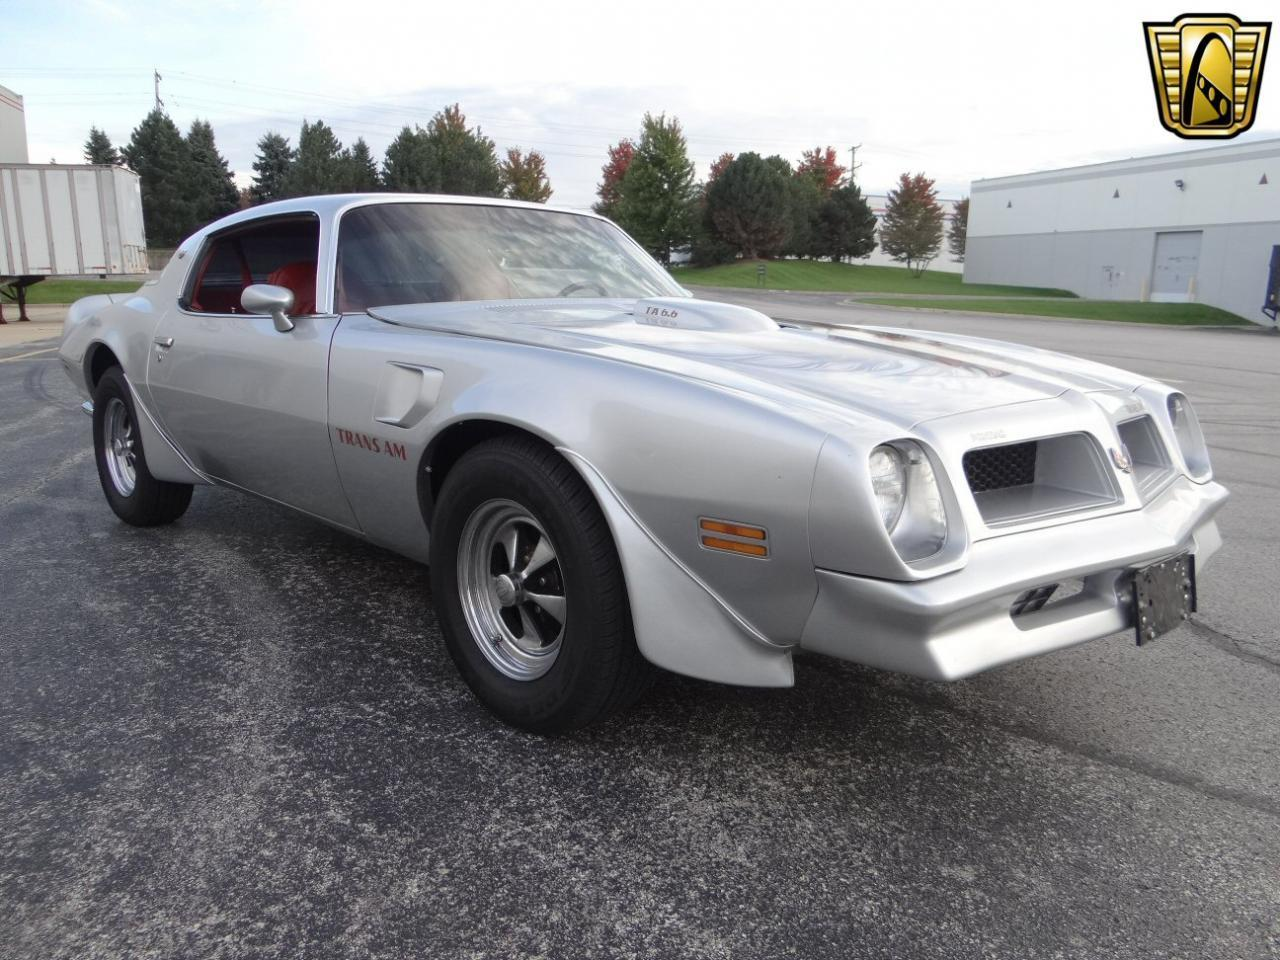 Large Picture of 1976 Pontiac Firebird located in Crete Illinois - $15,595.00 Offered by Gateway Classic Cars - Chicago - KF0S